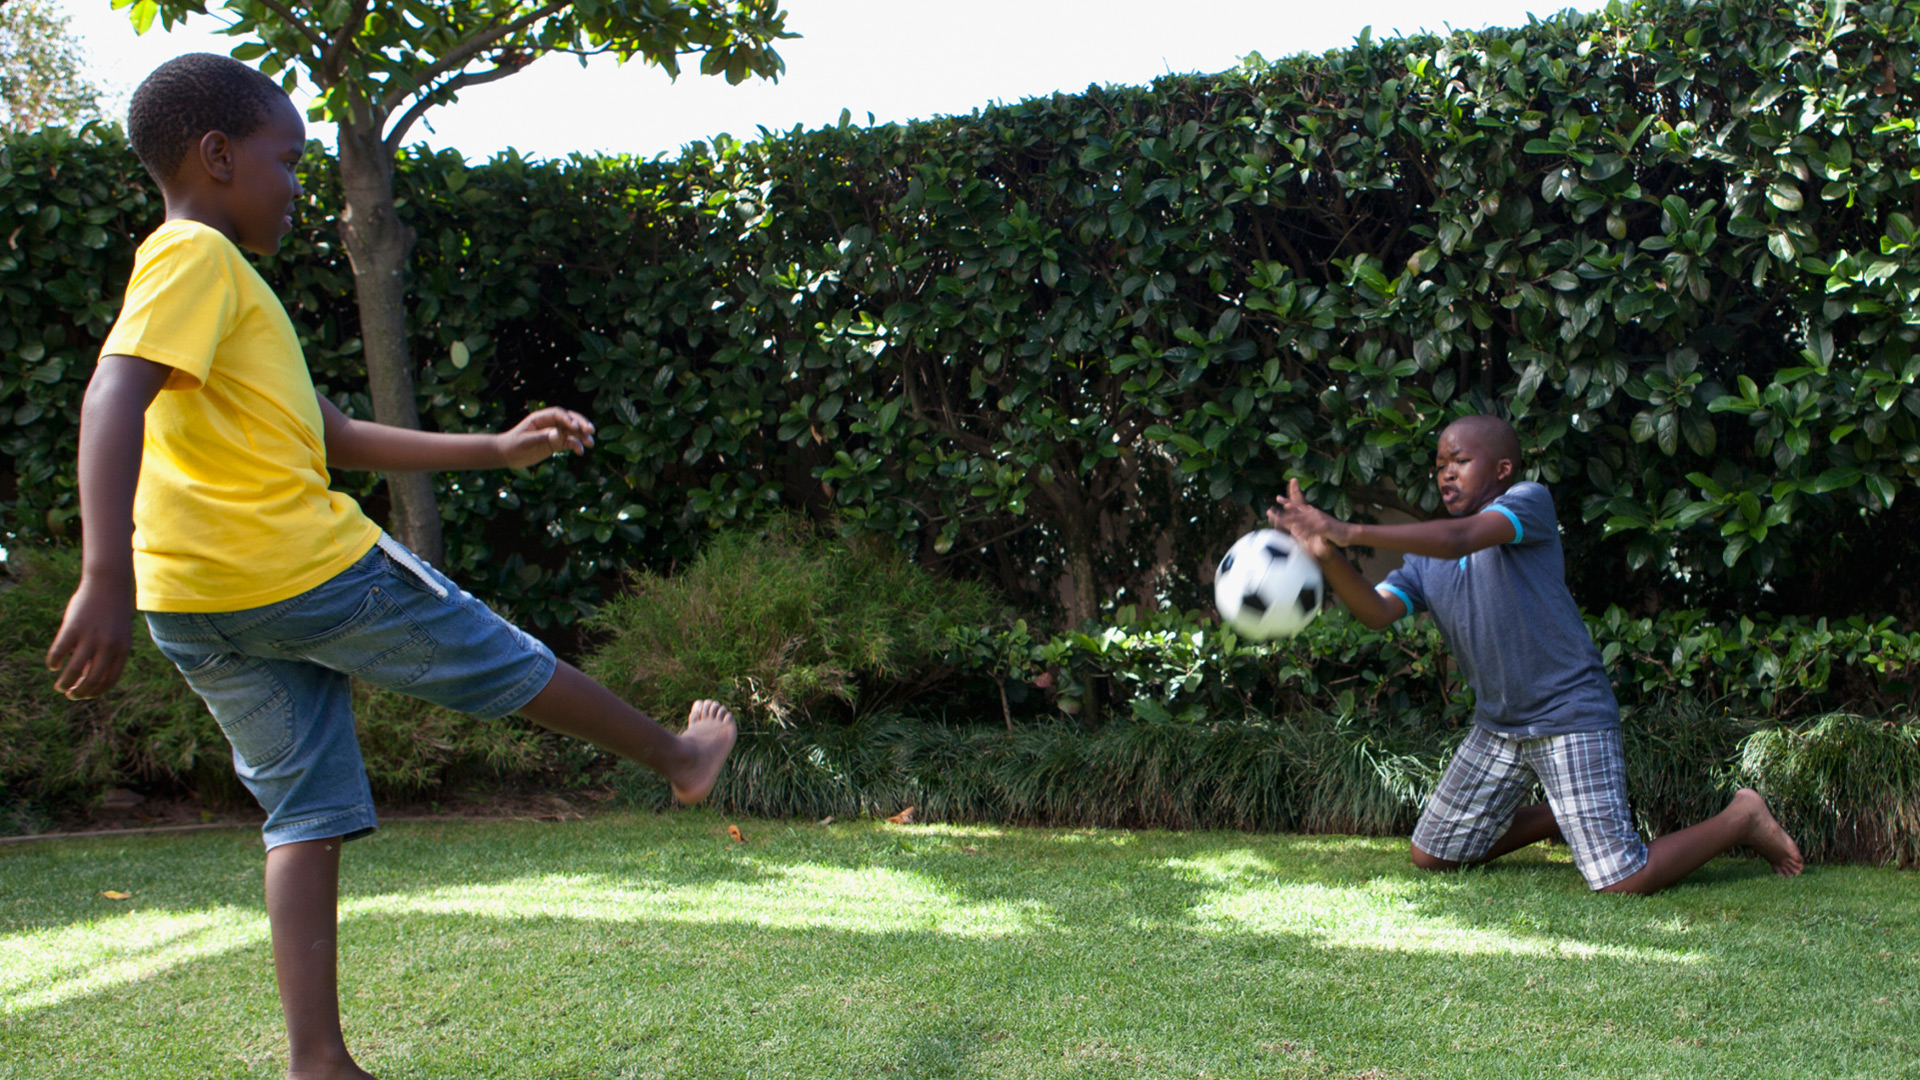 Children playing soccer | Sheknows.com